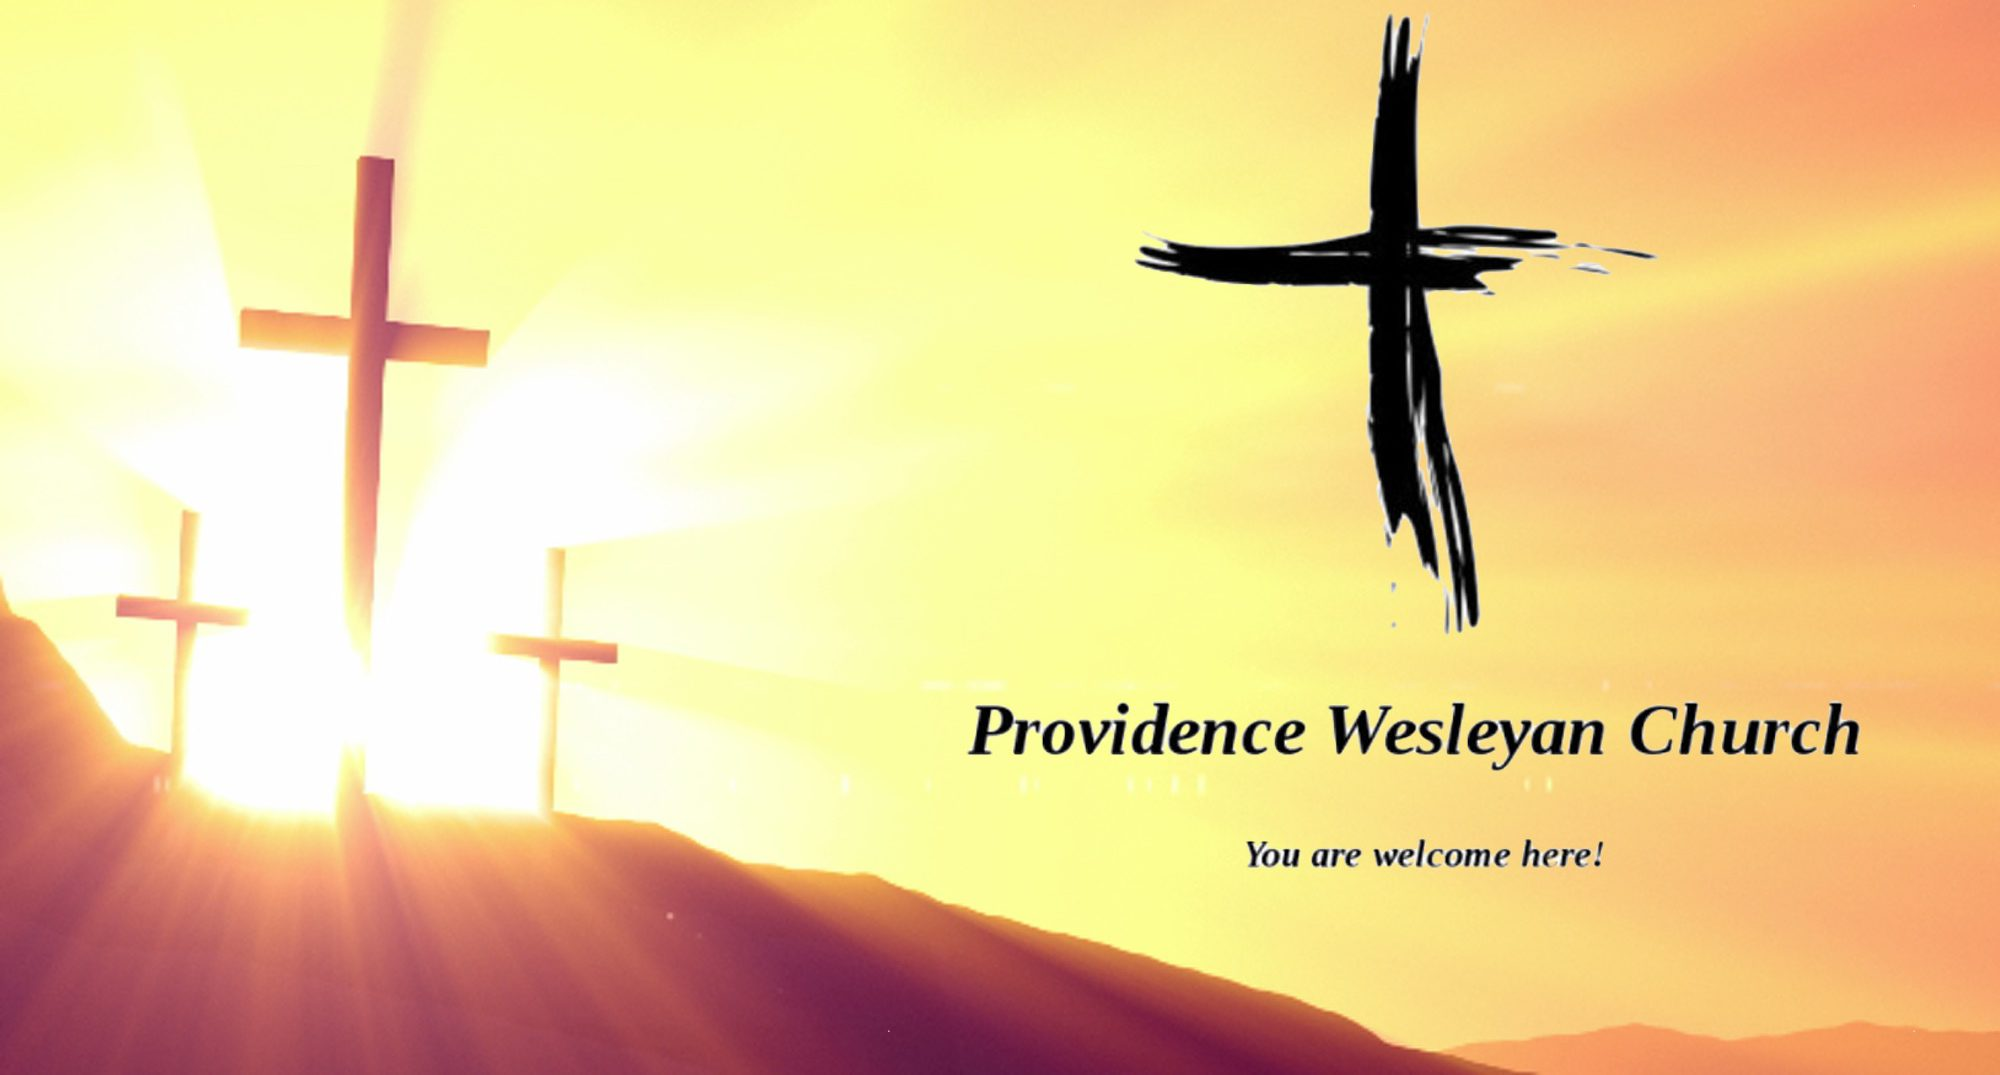 Providence Wesleyan Church